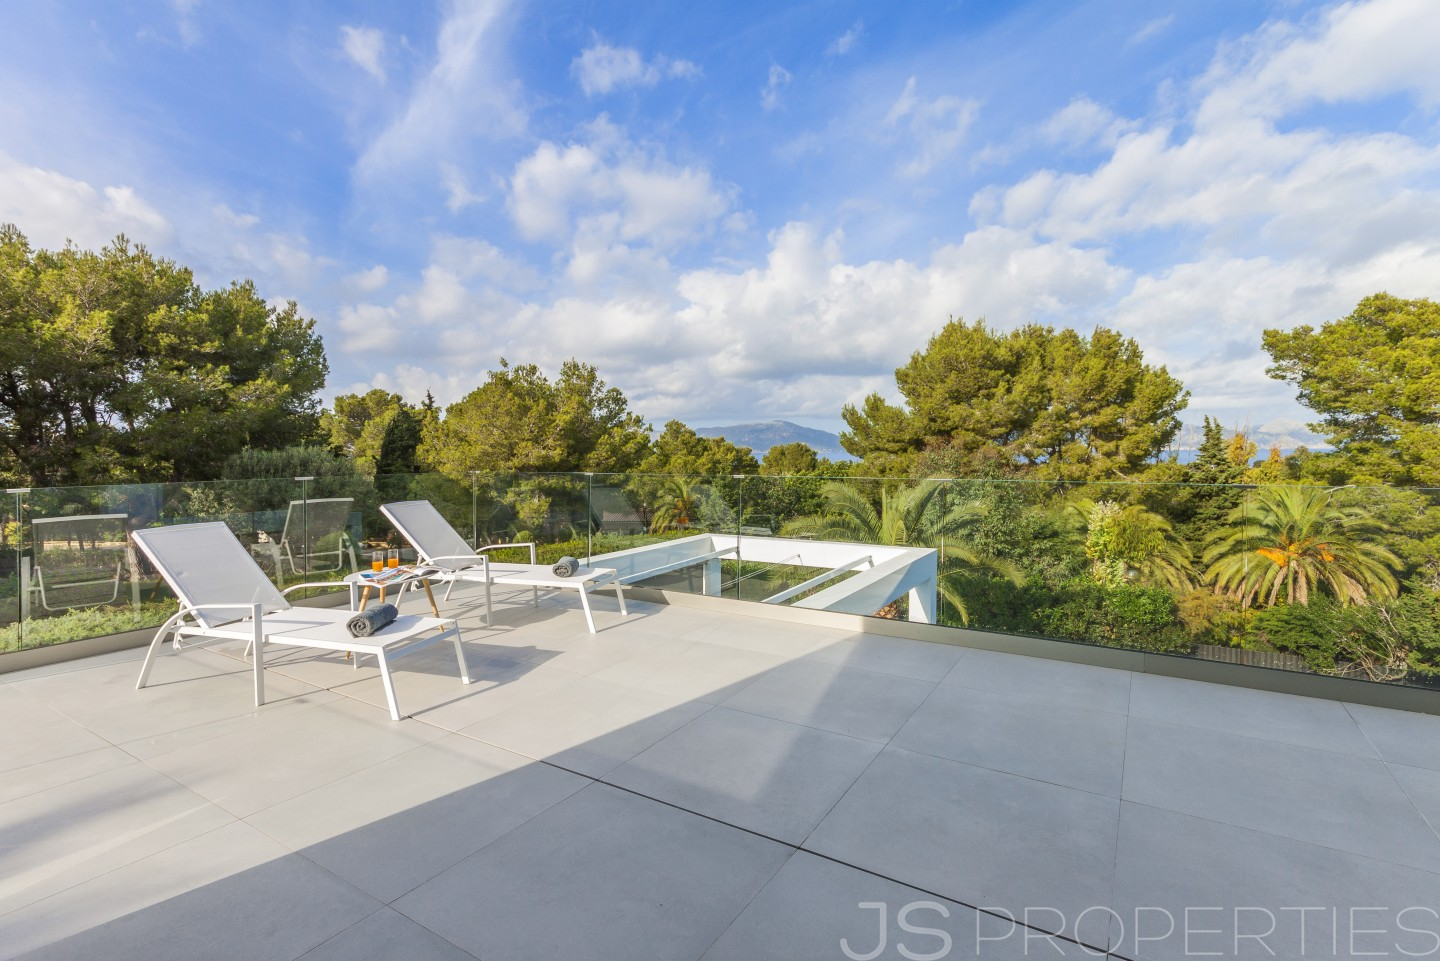 MODERN, BRAND NEW VILLA WITH SEA VIEWS FOR SALE IN THE NORTH